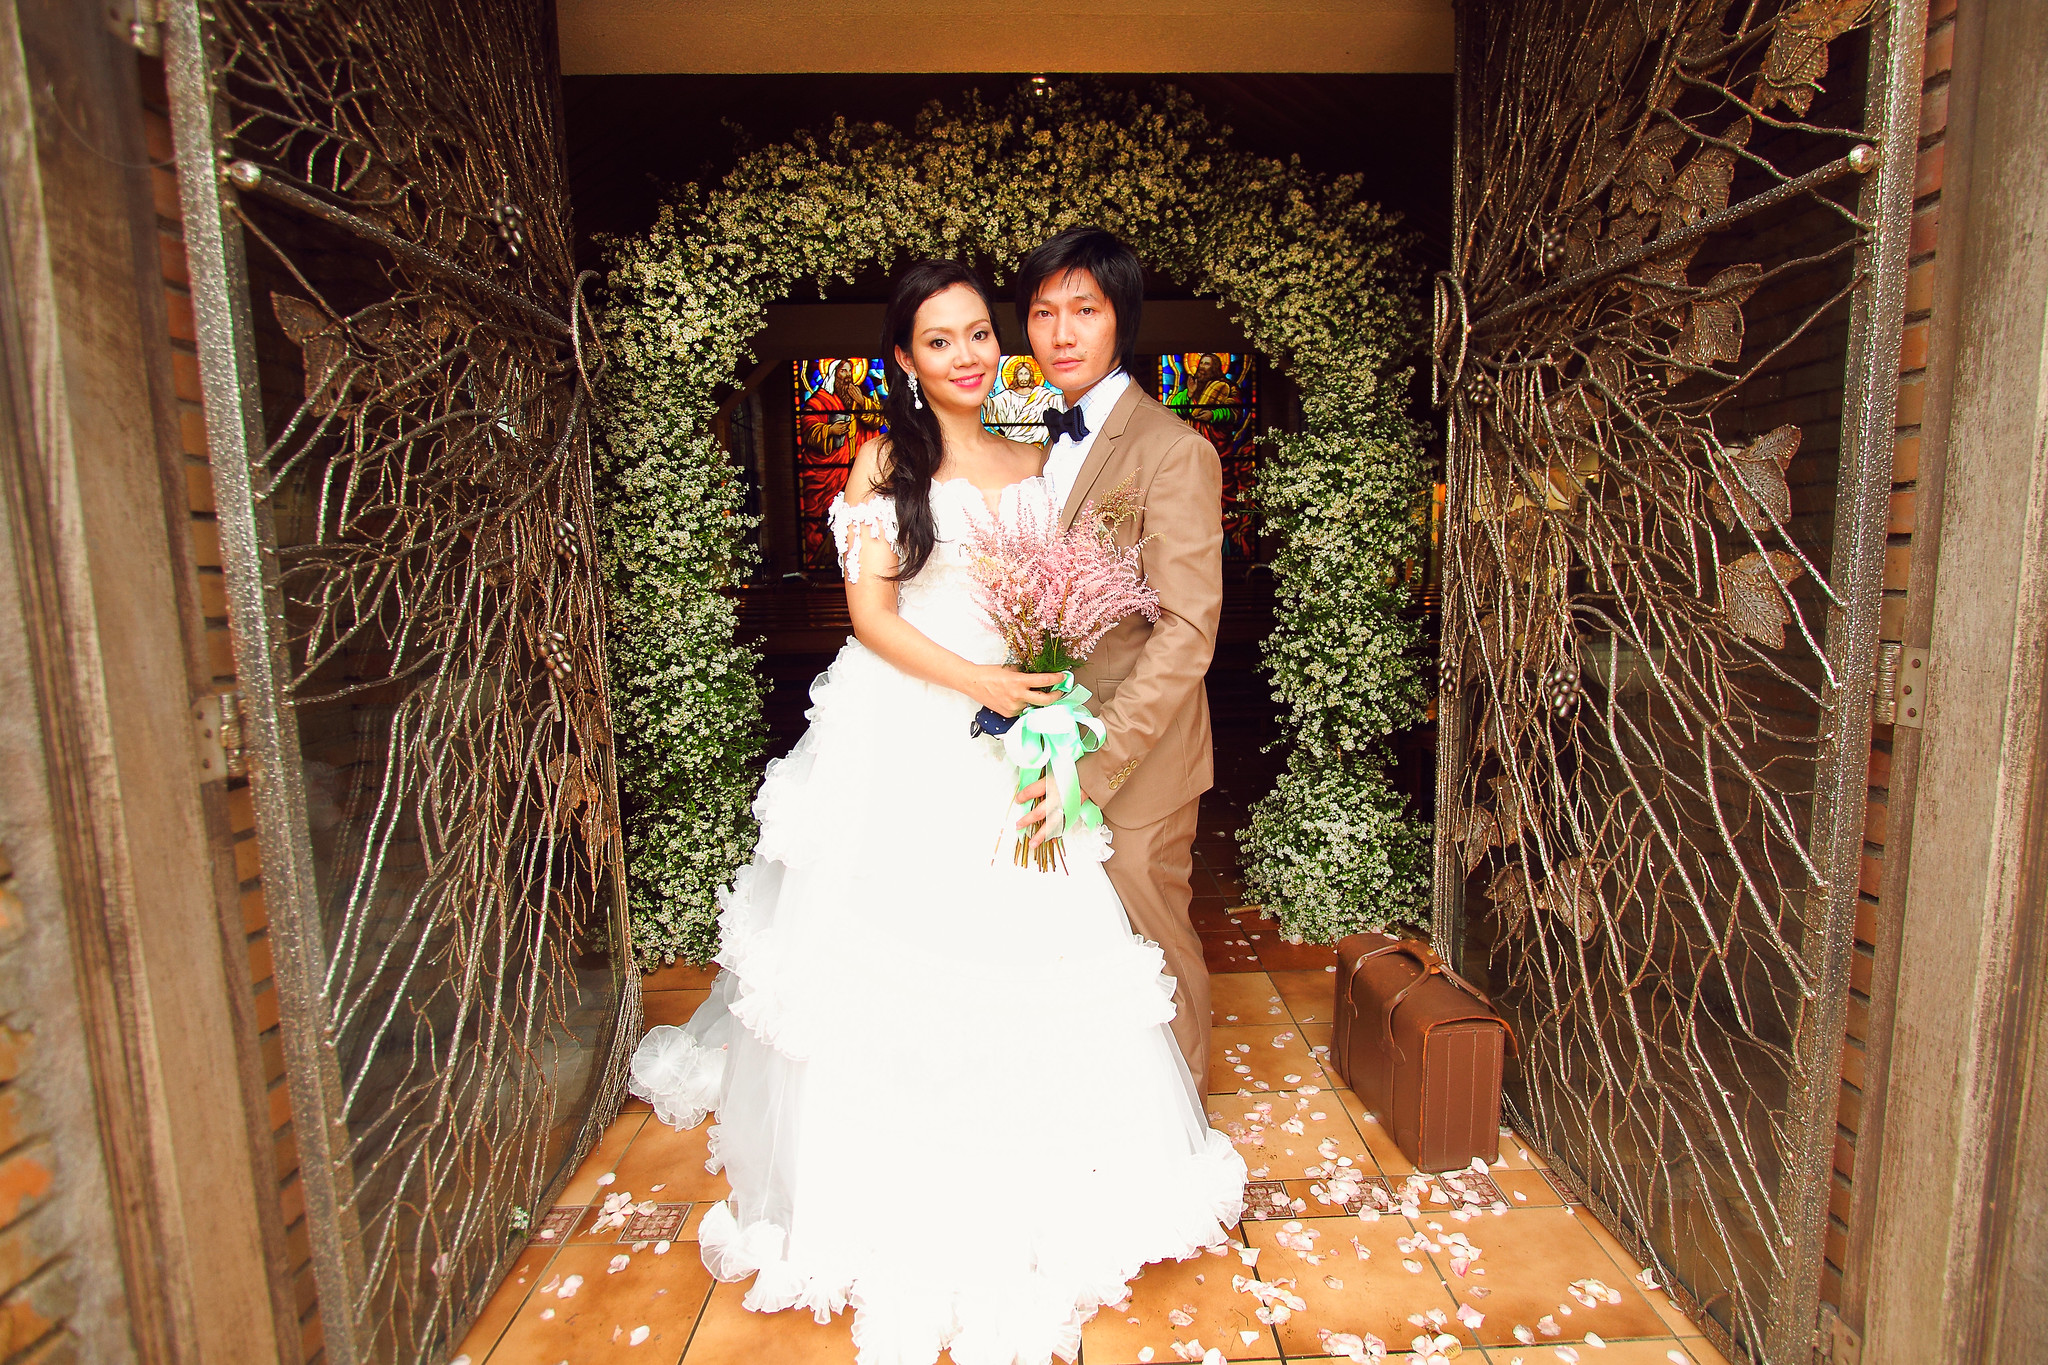 Brian and Jaycelle's Wedding, 9 November 2013